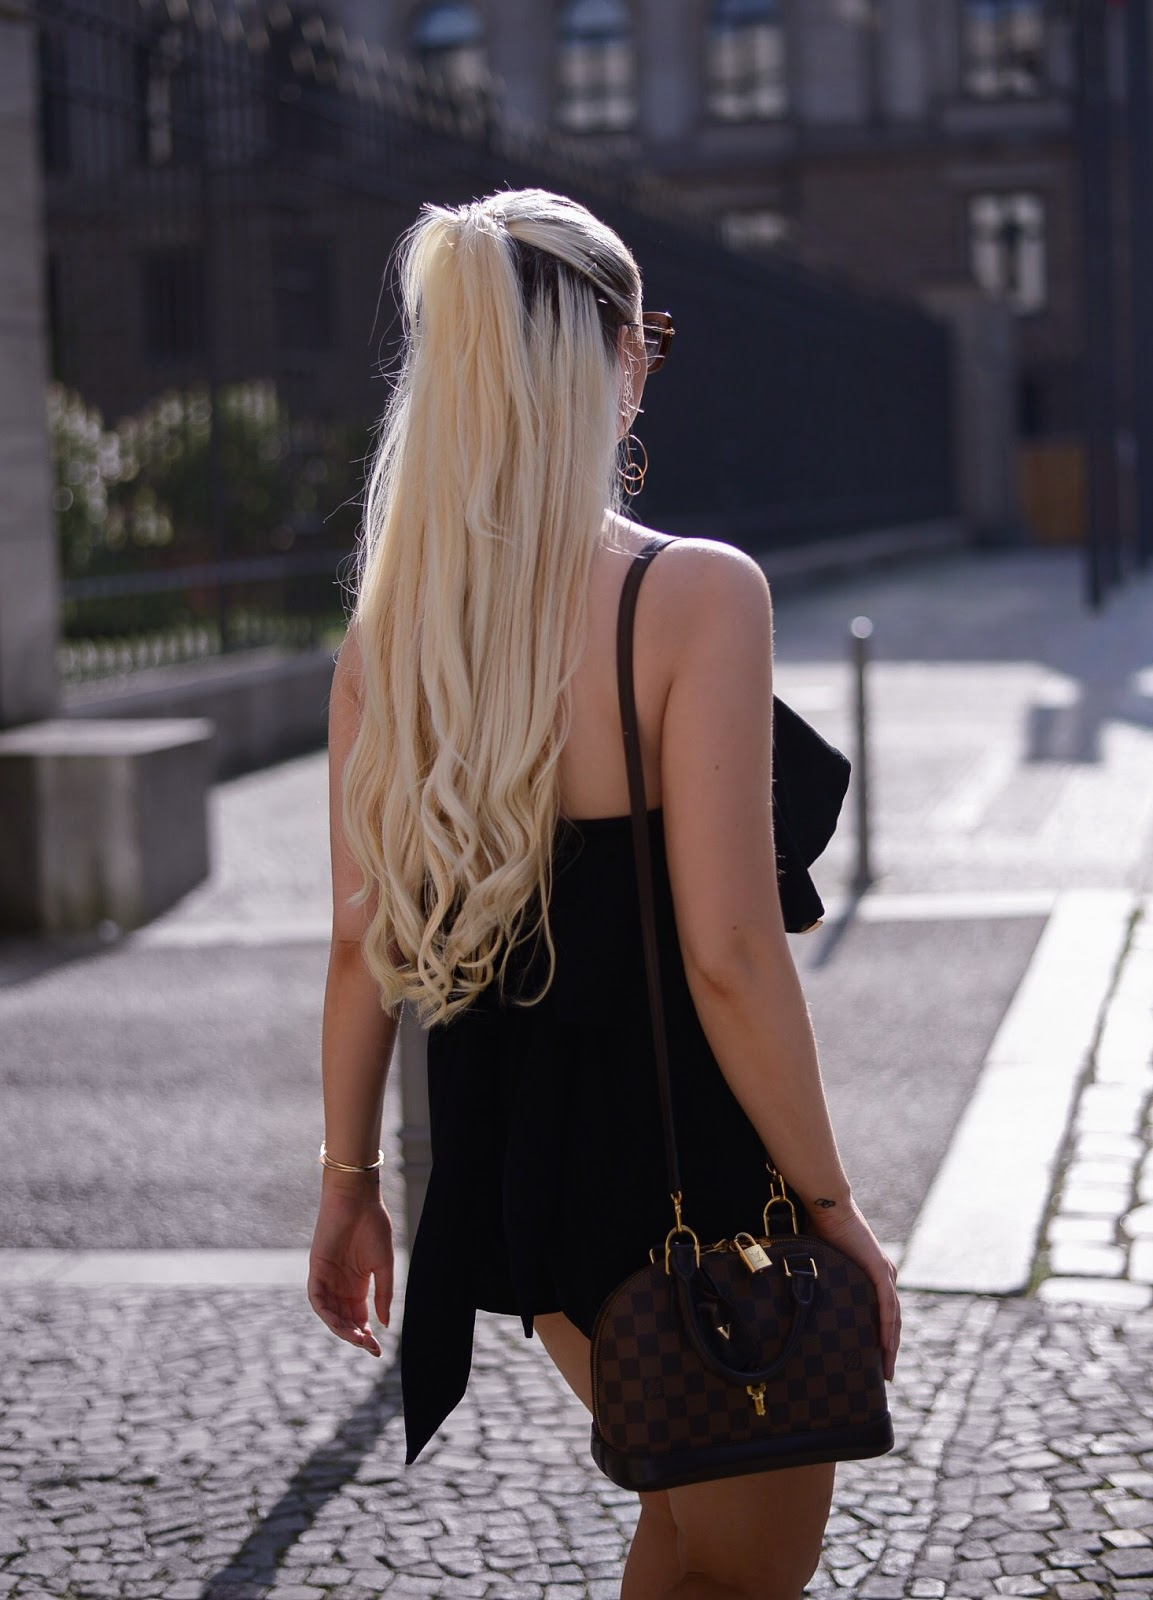 sommer frisuren_summer hairstyles